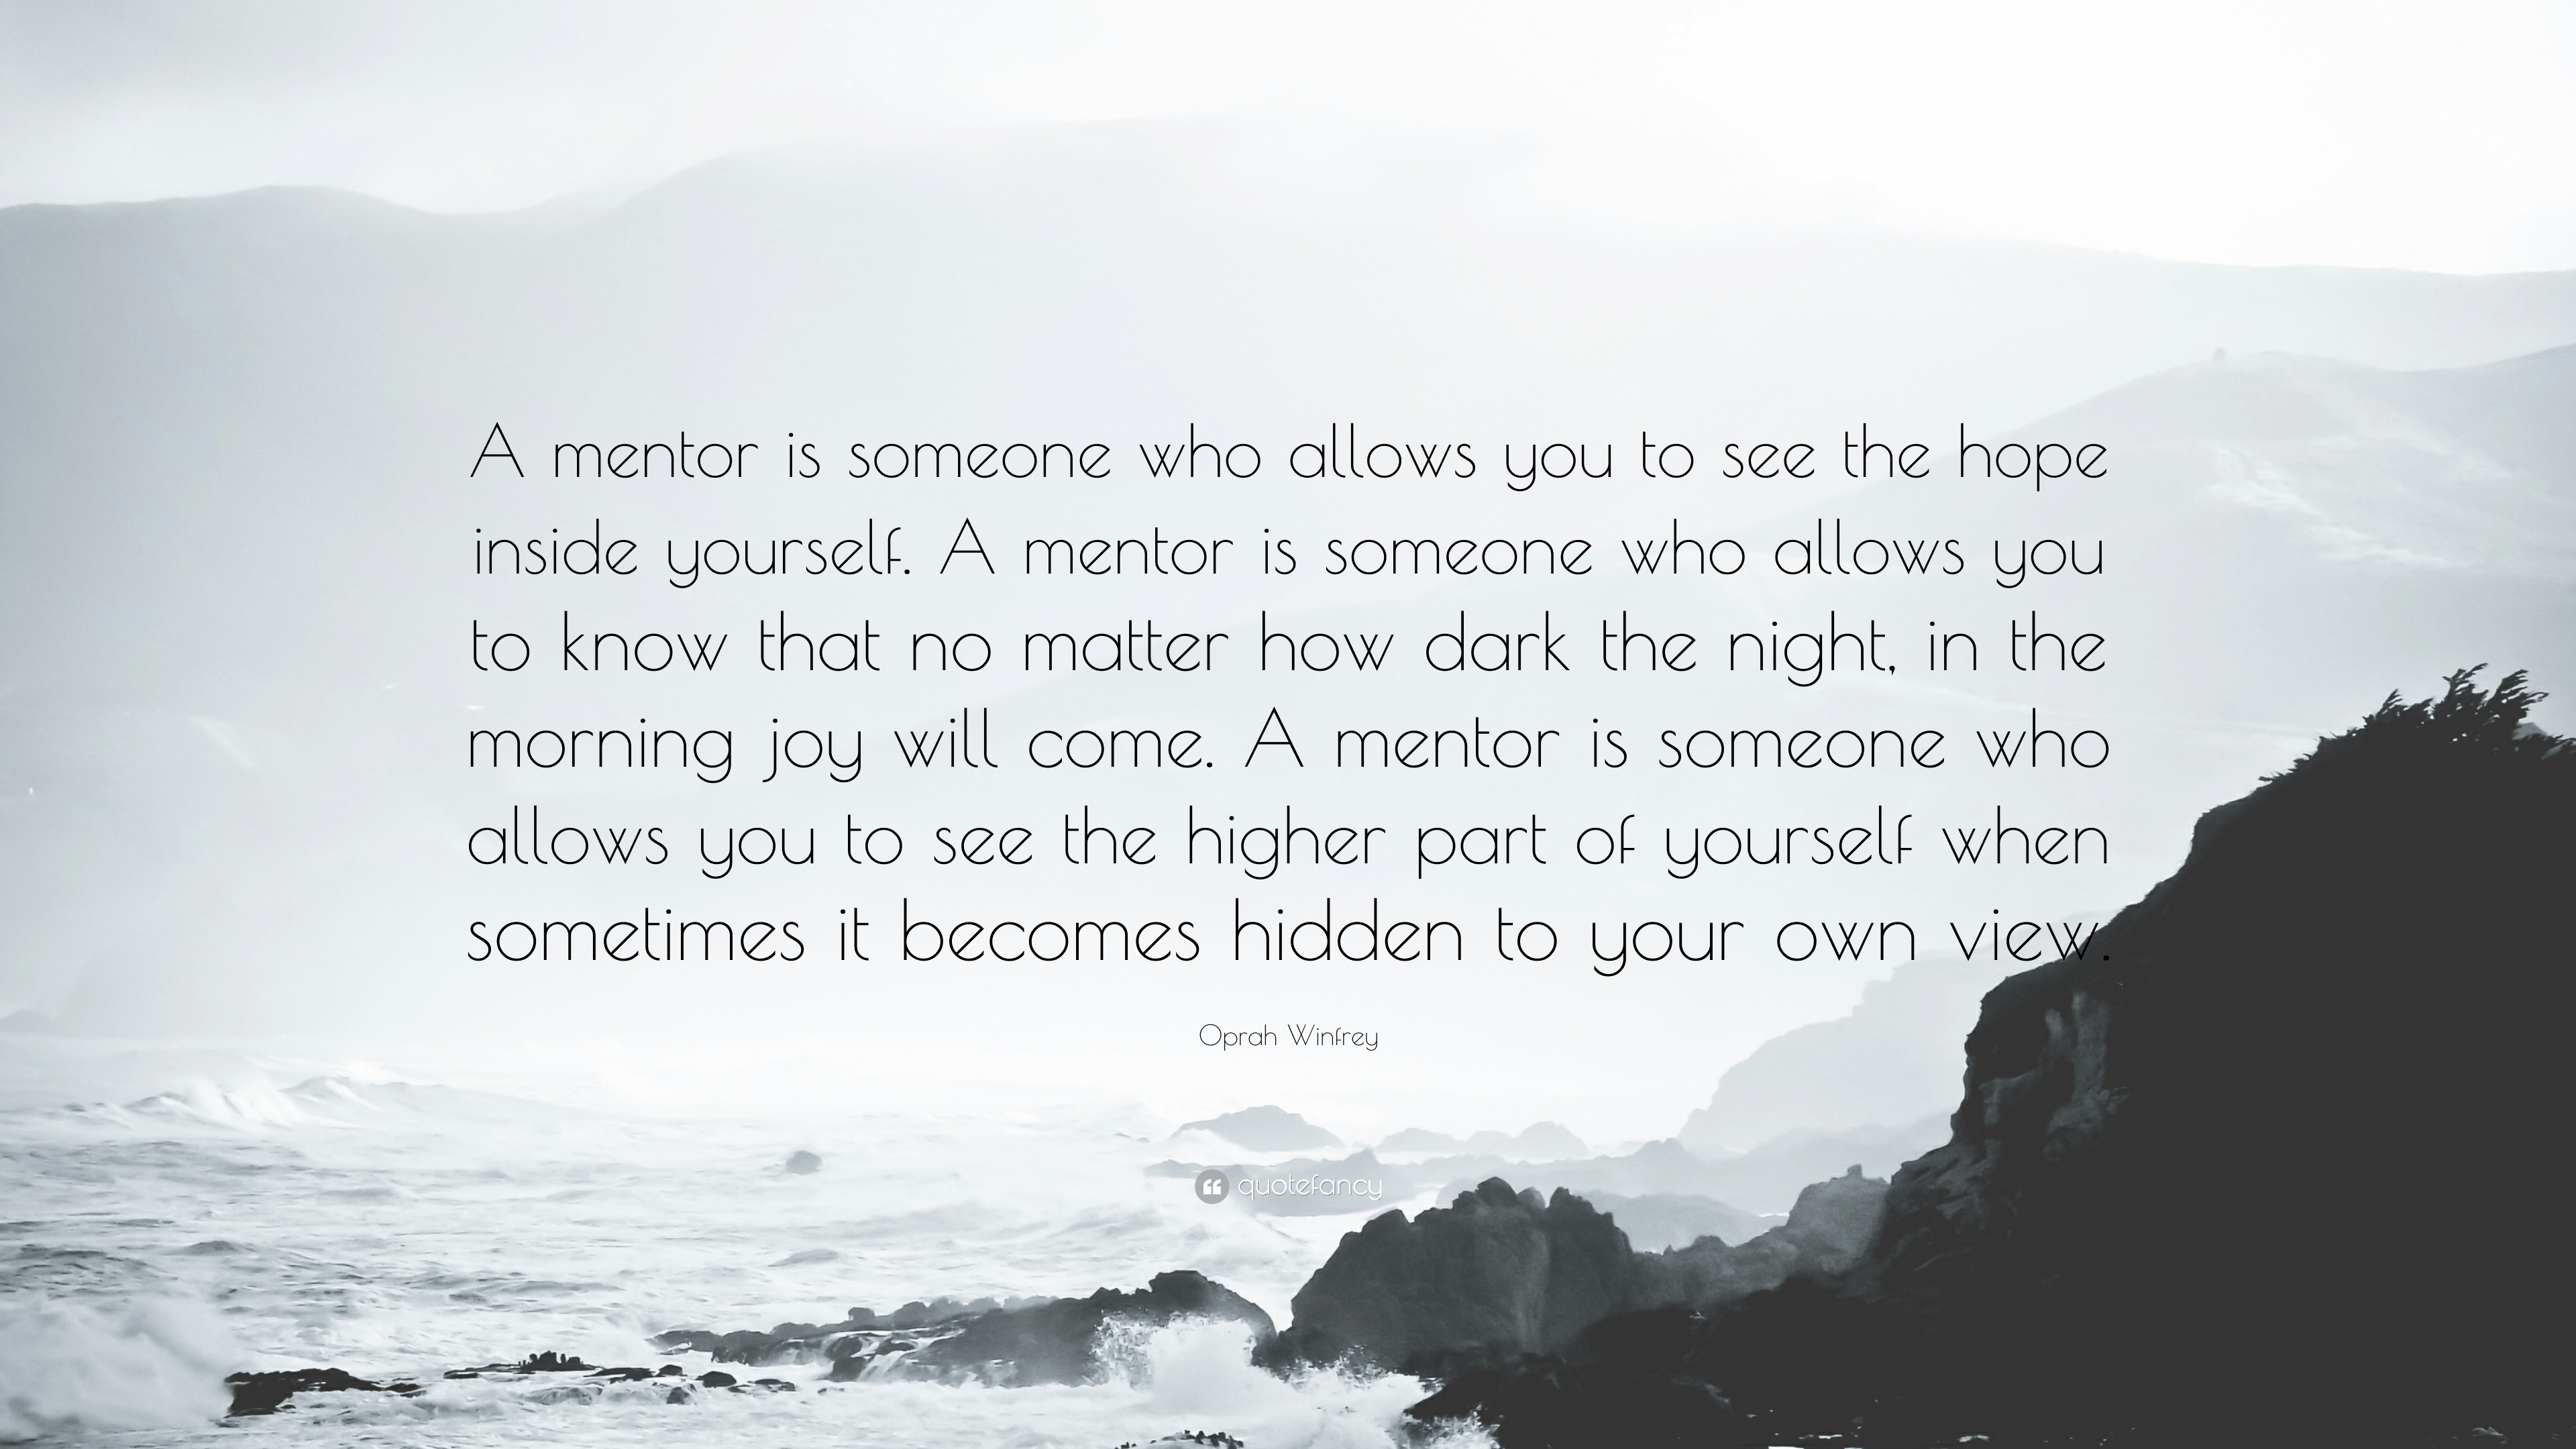 My Mentorship Journey One Year On